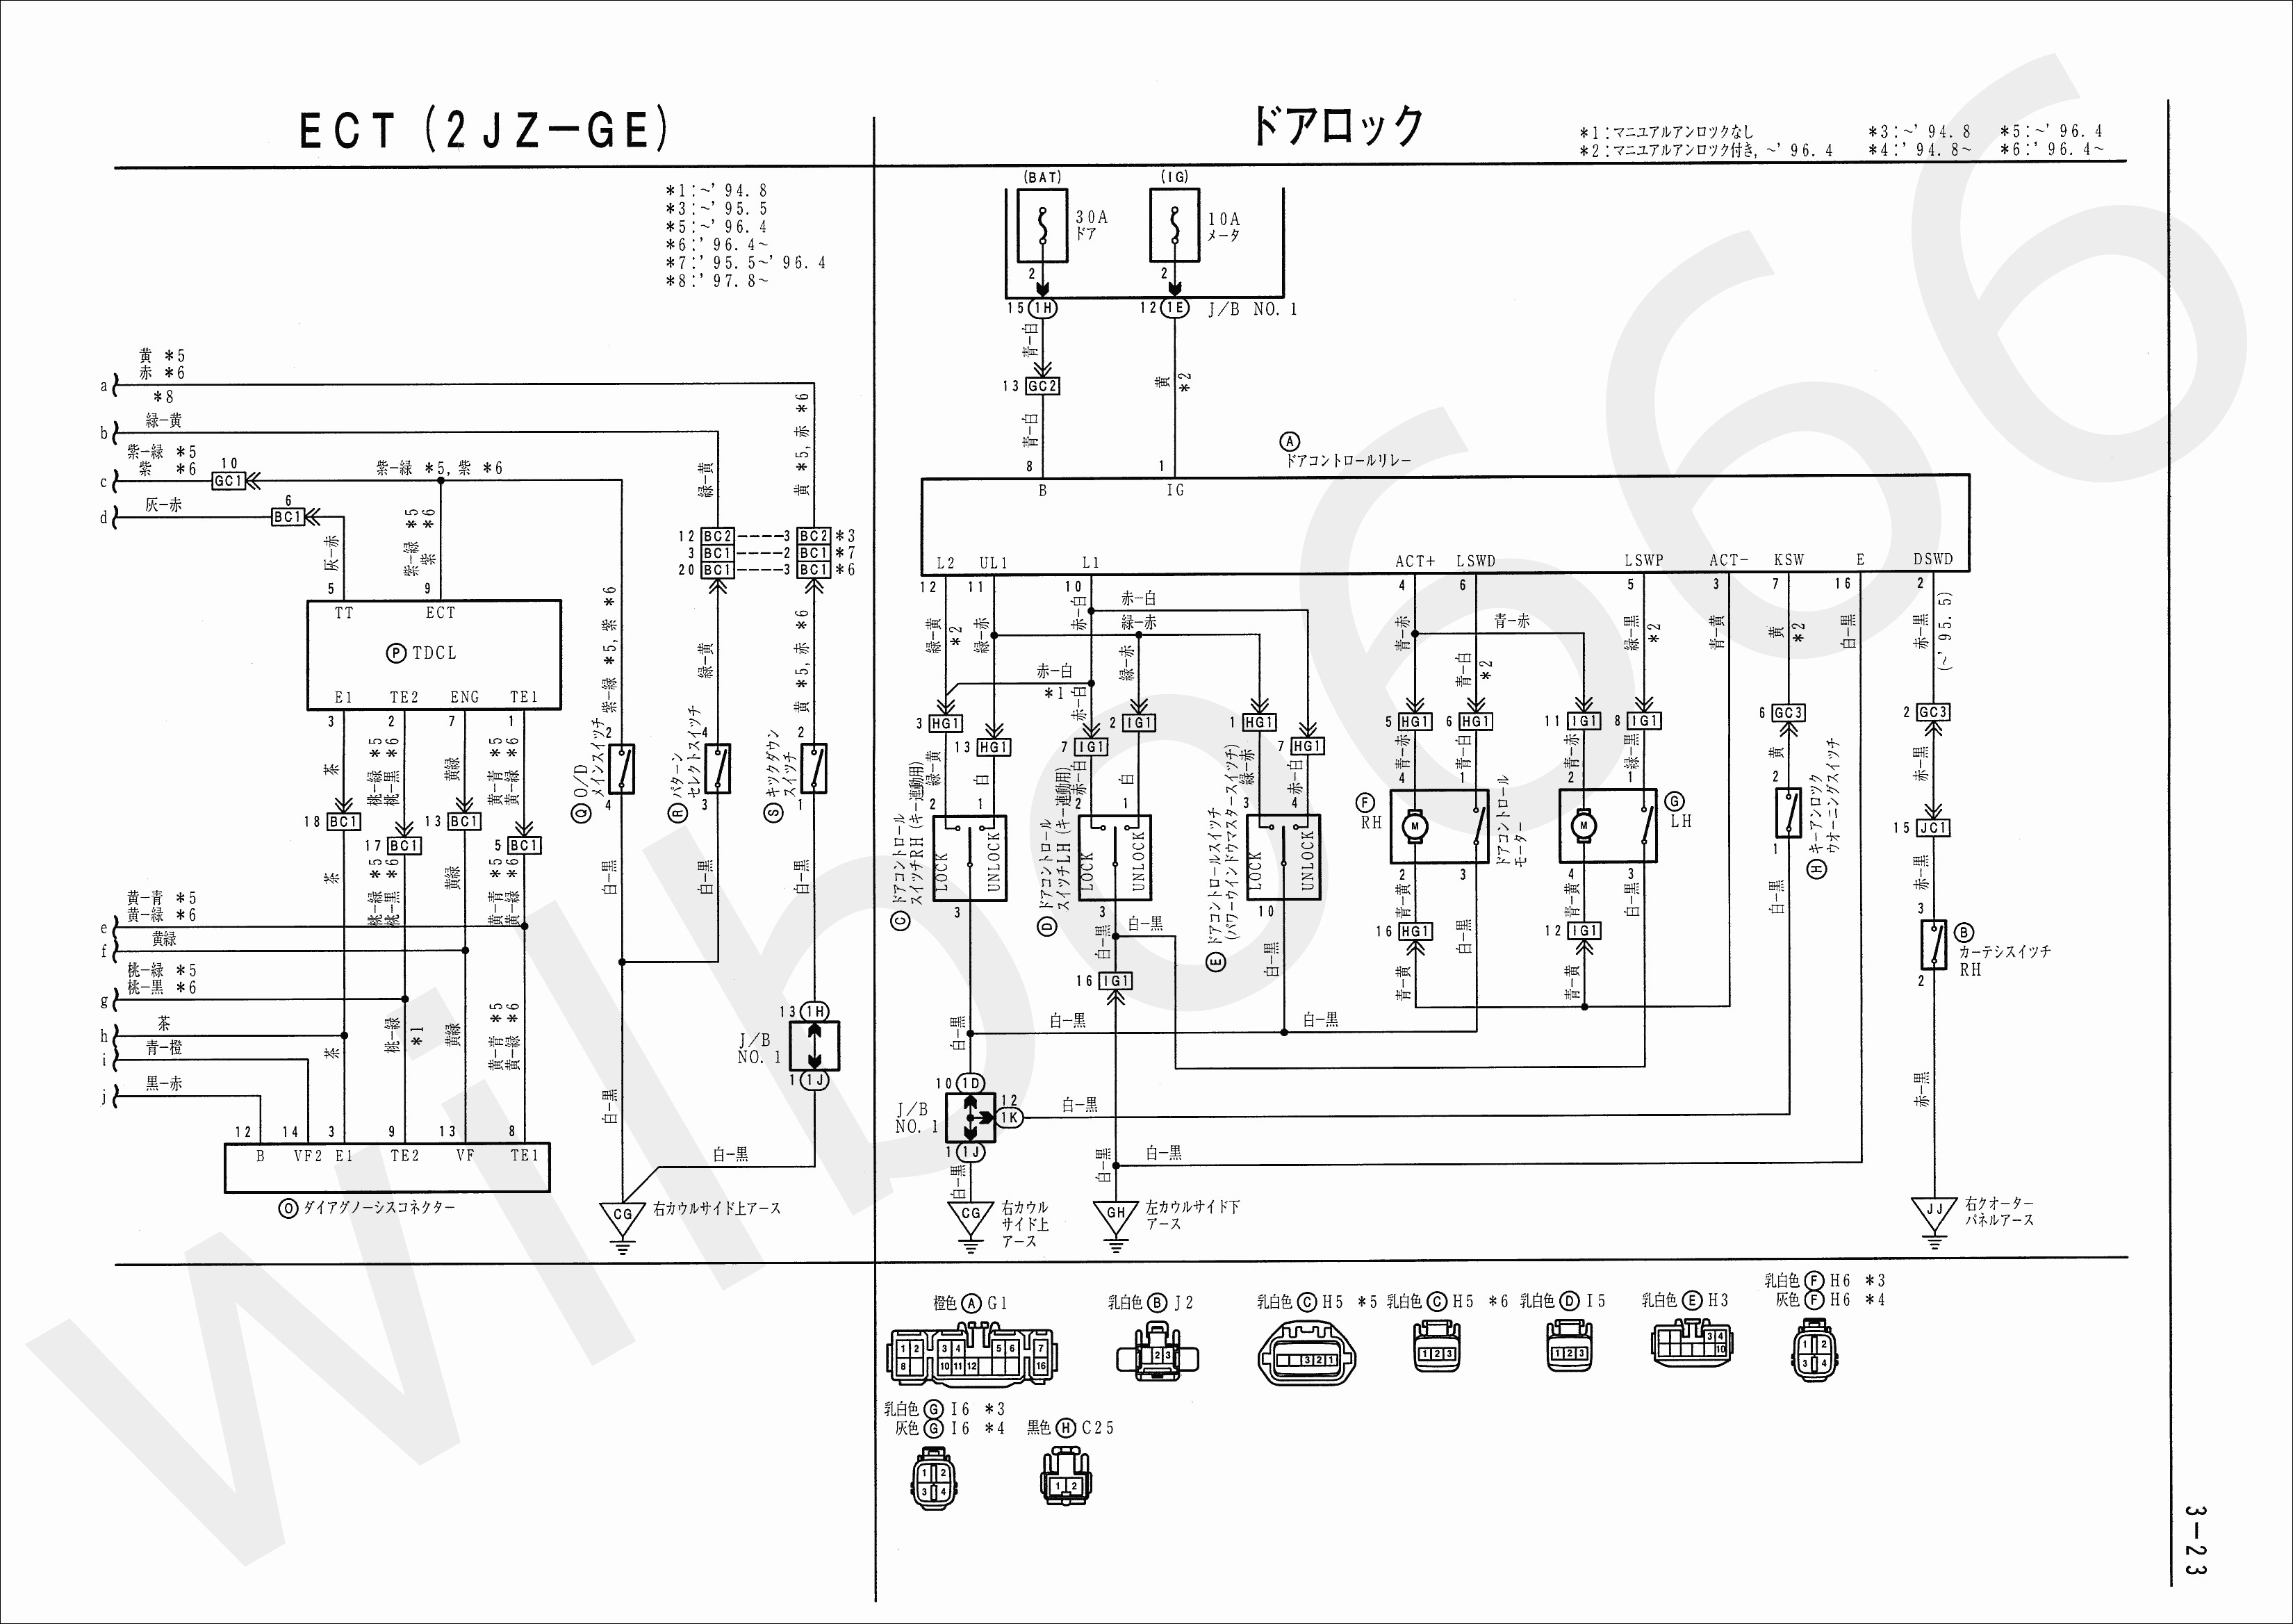 Basic Wiring Diagram For Riding Lawn Mower from annawiringdiagram.com